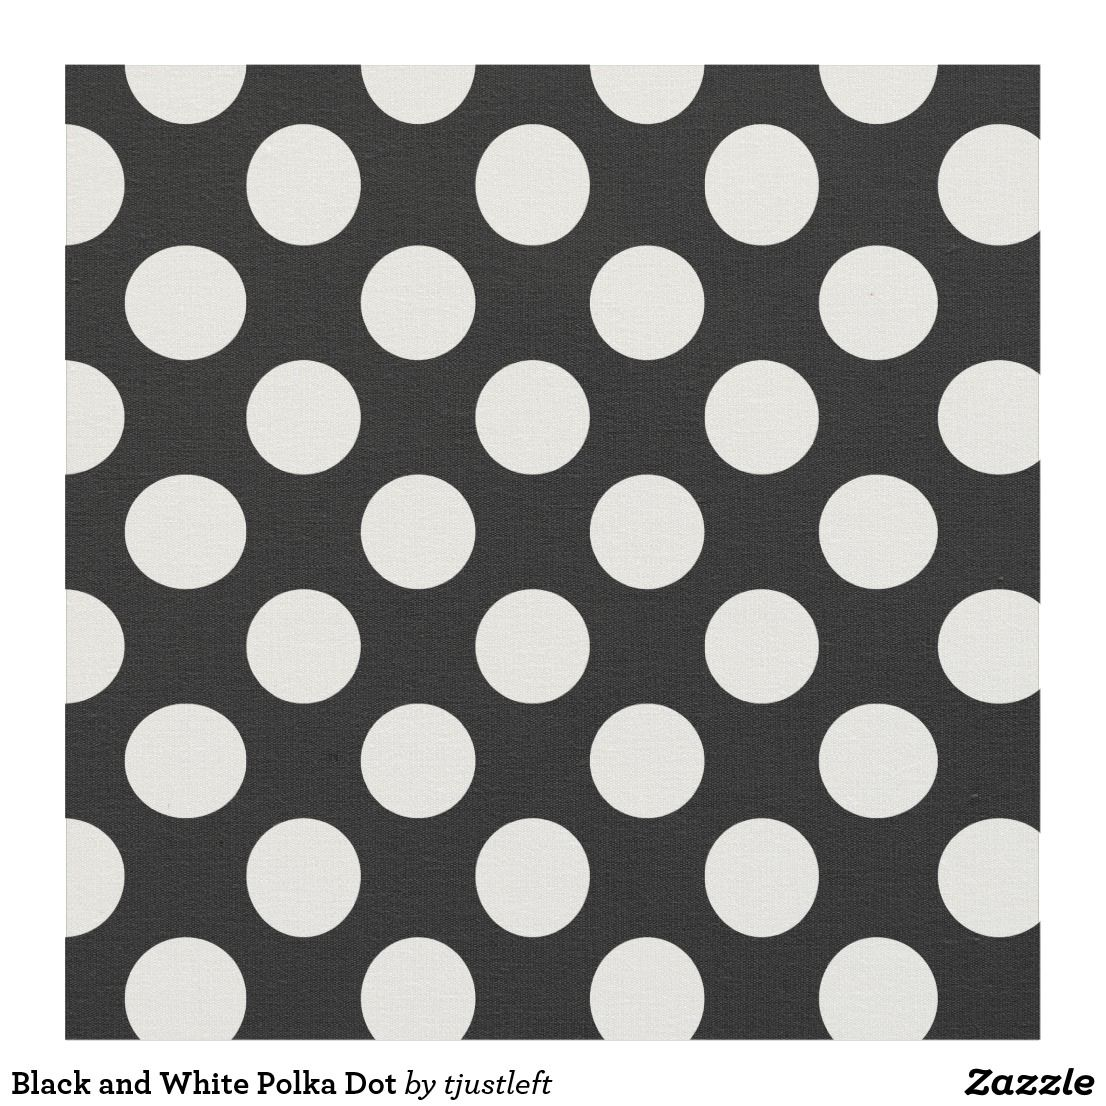 Black And White Polka Dot Fabric Polka Dot Fabric Dotted Fabric Polka Dots